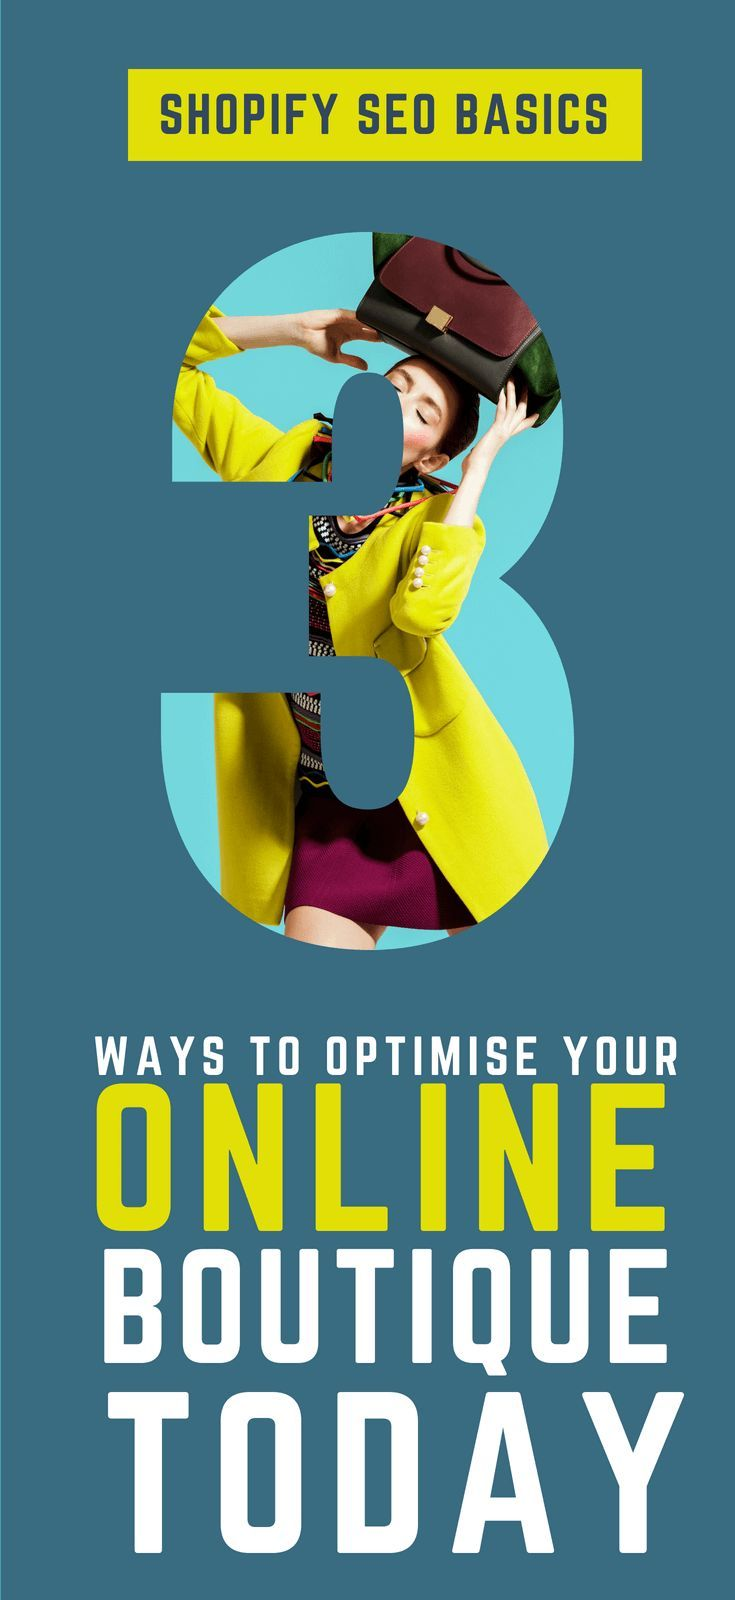 47ae82b62769 Shopify SEO Basics  Make Google Love Your Boutique In 3 Easy Steps ...